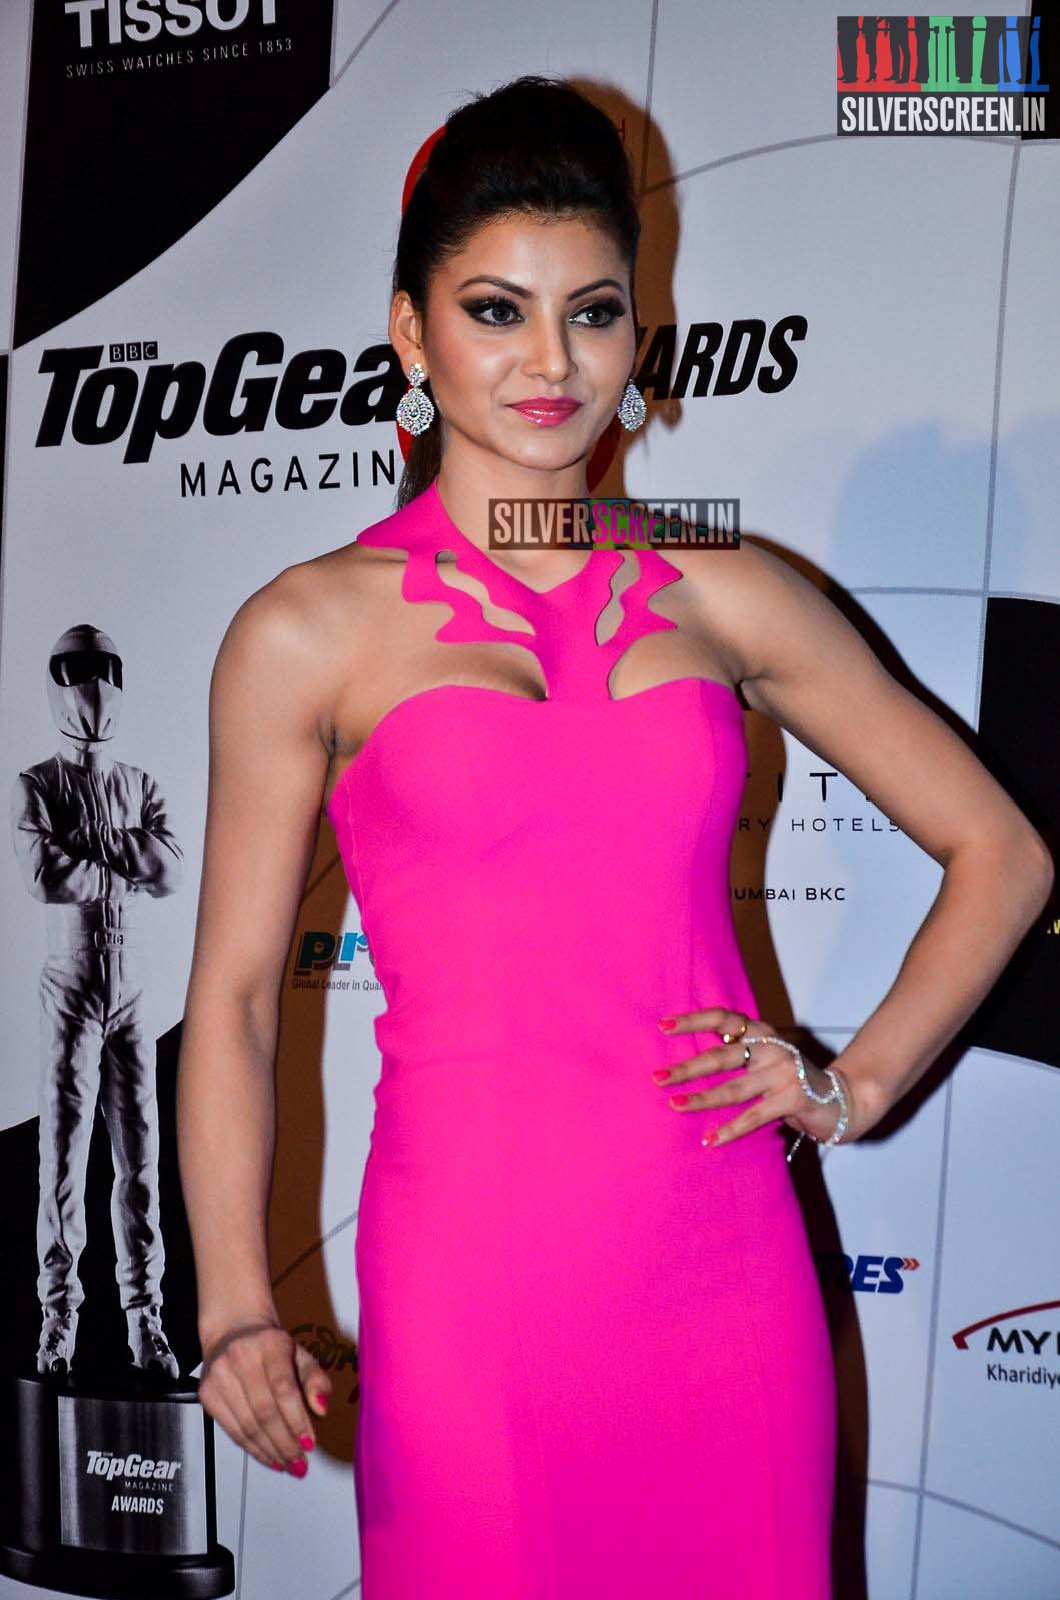 Sunny Leone At The Top Gear Awards Silverscreen In